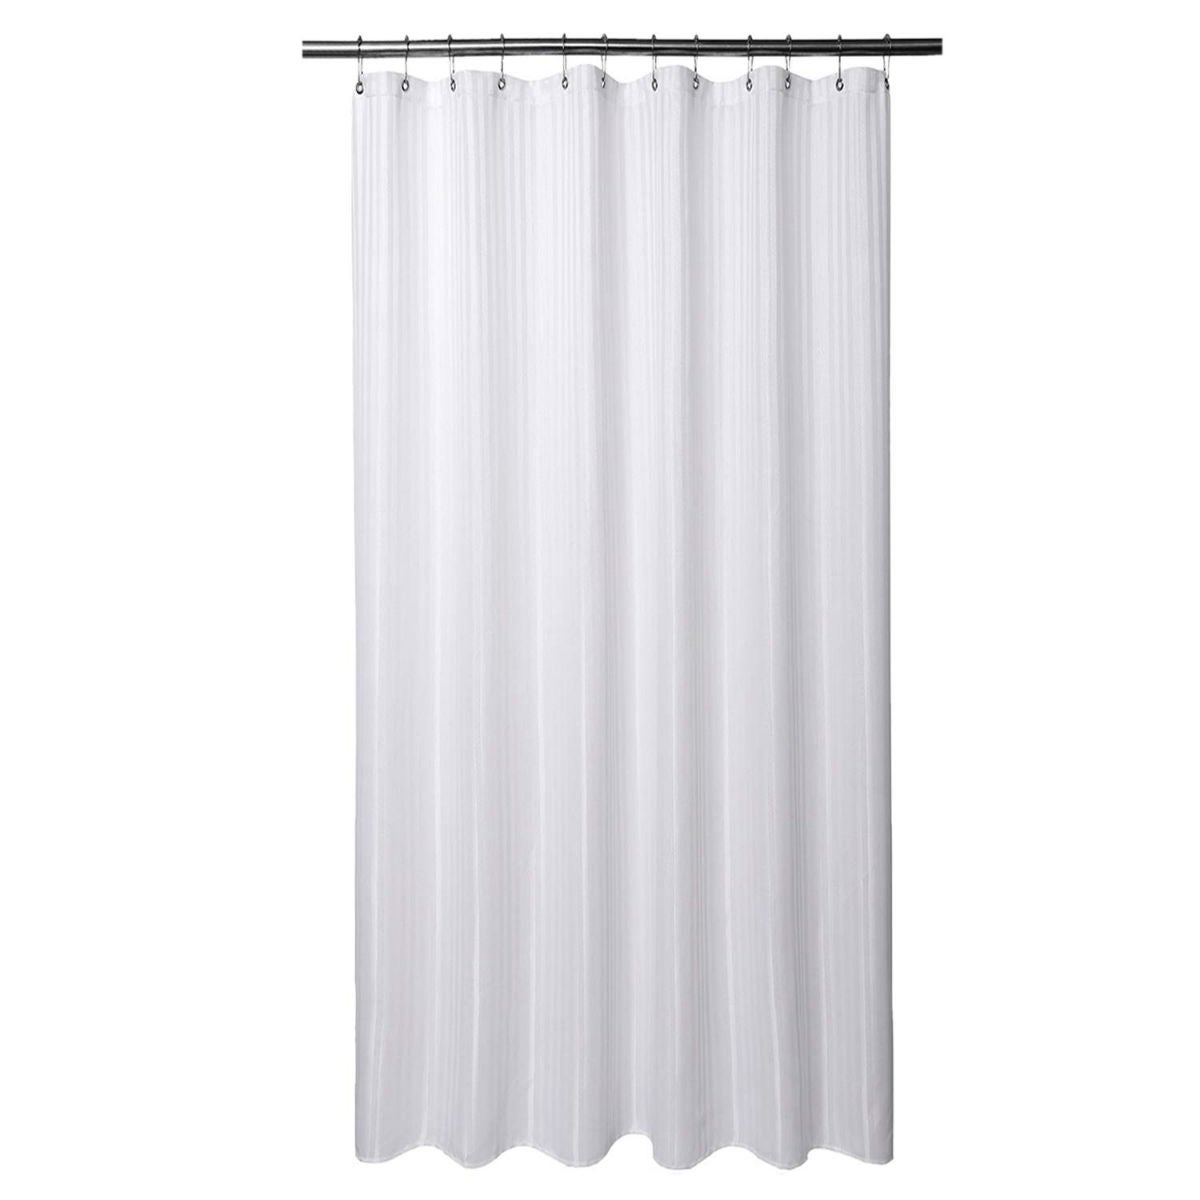 The Best Shower Curtains: Barossa Design